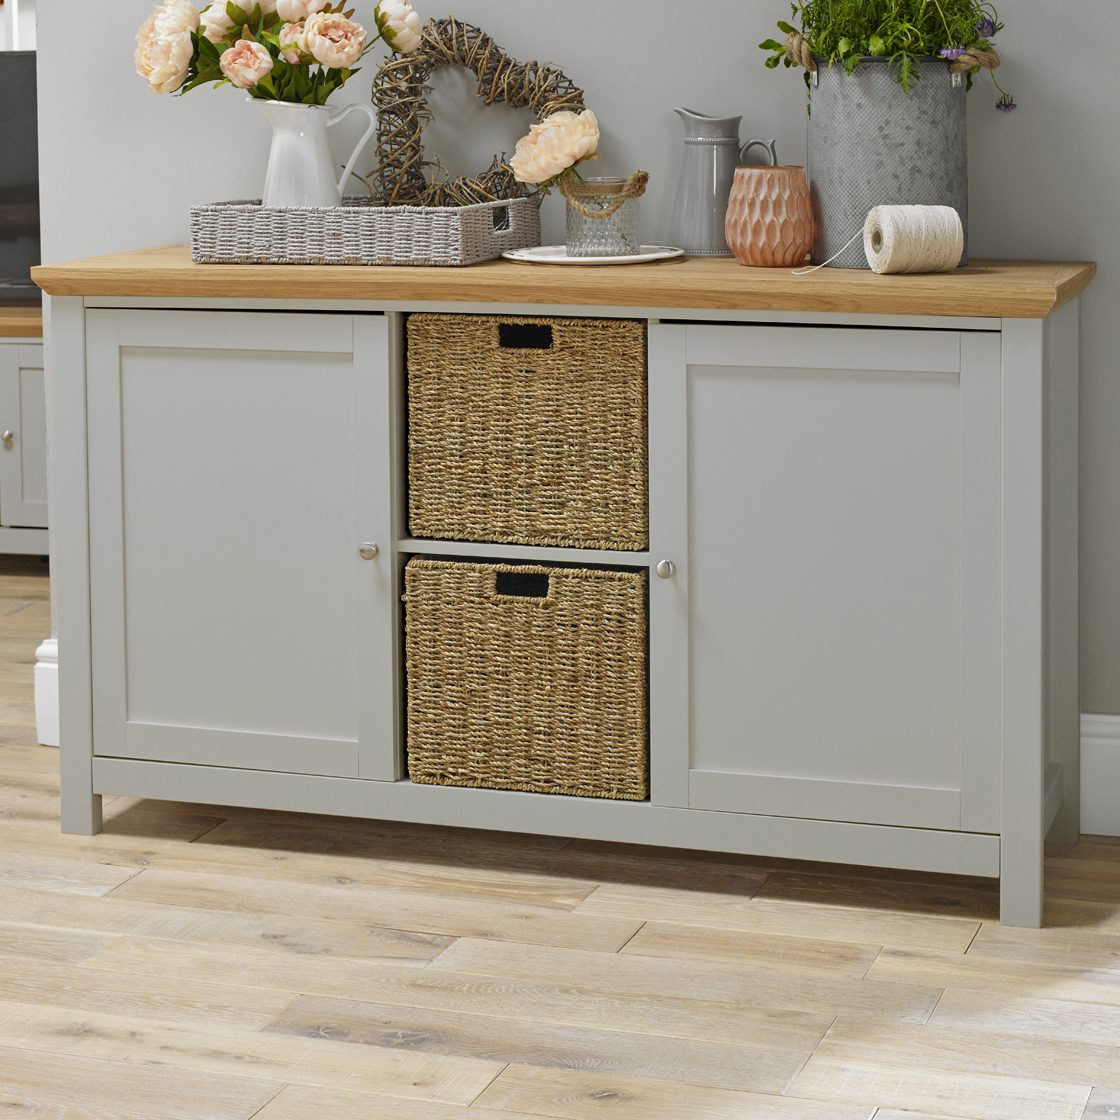 Ceeder Sideboard Grey